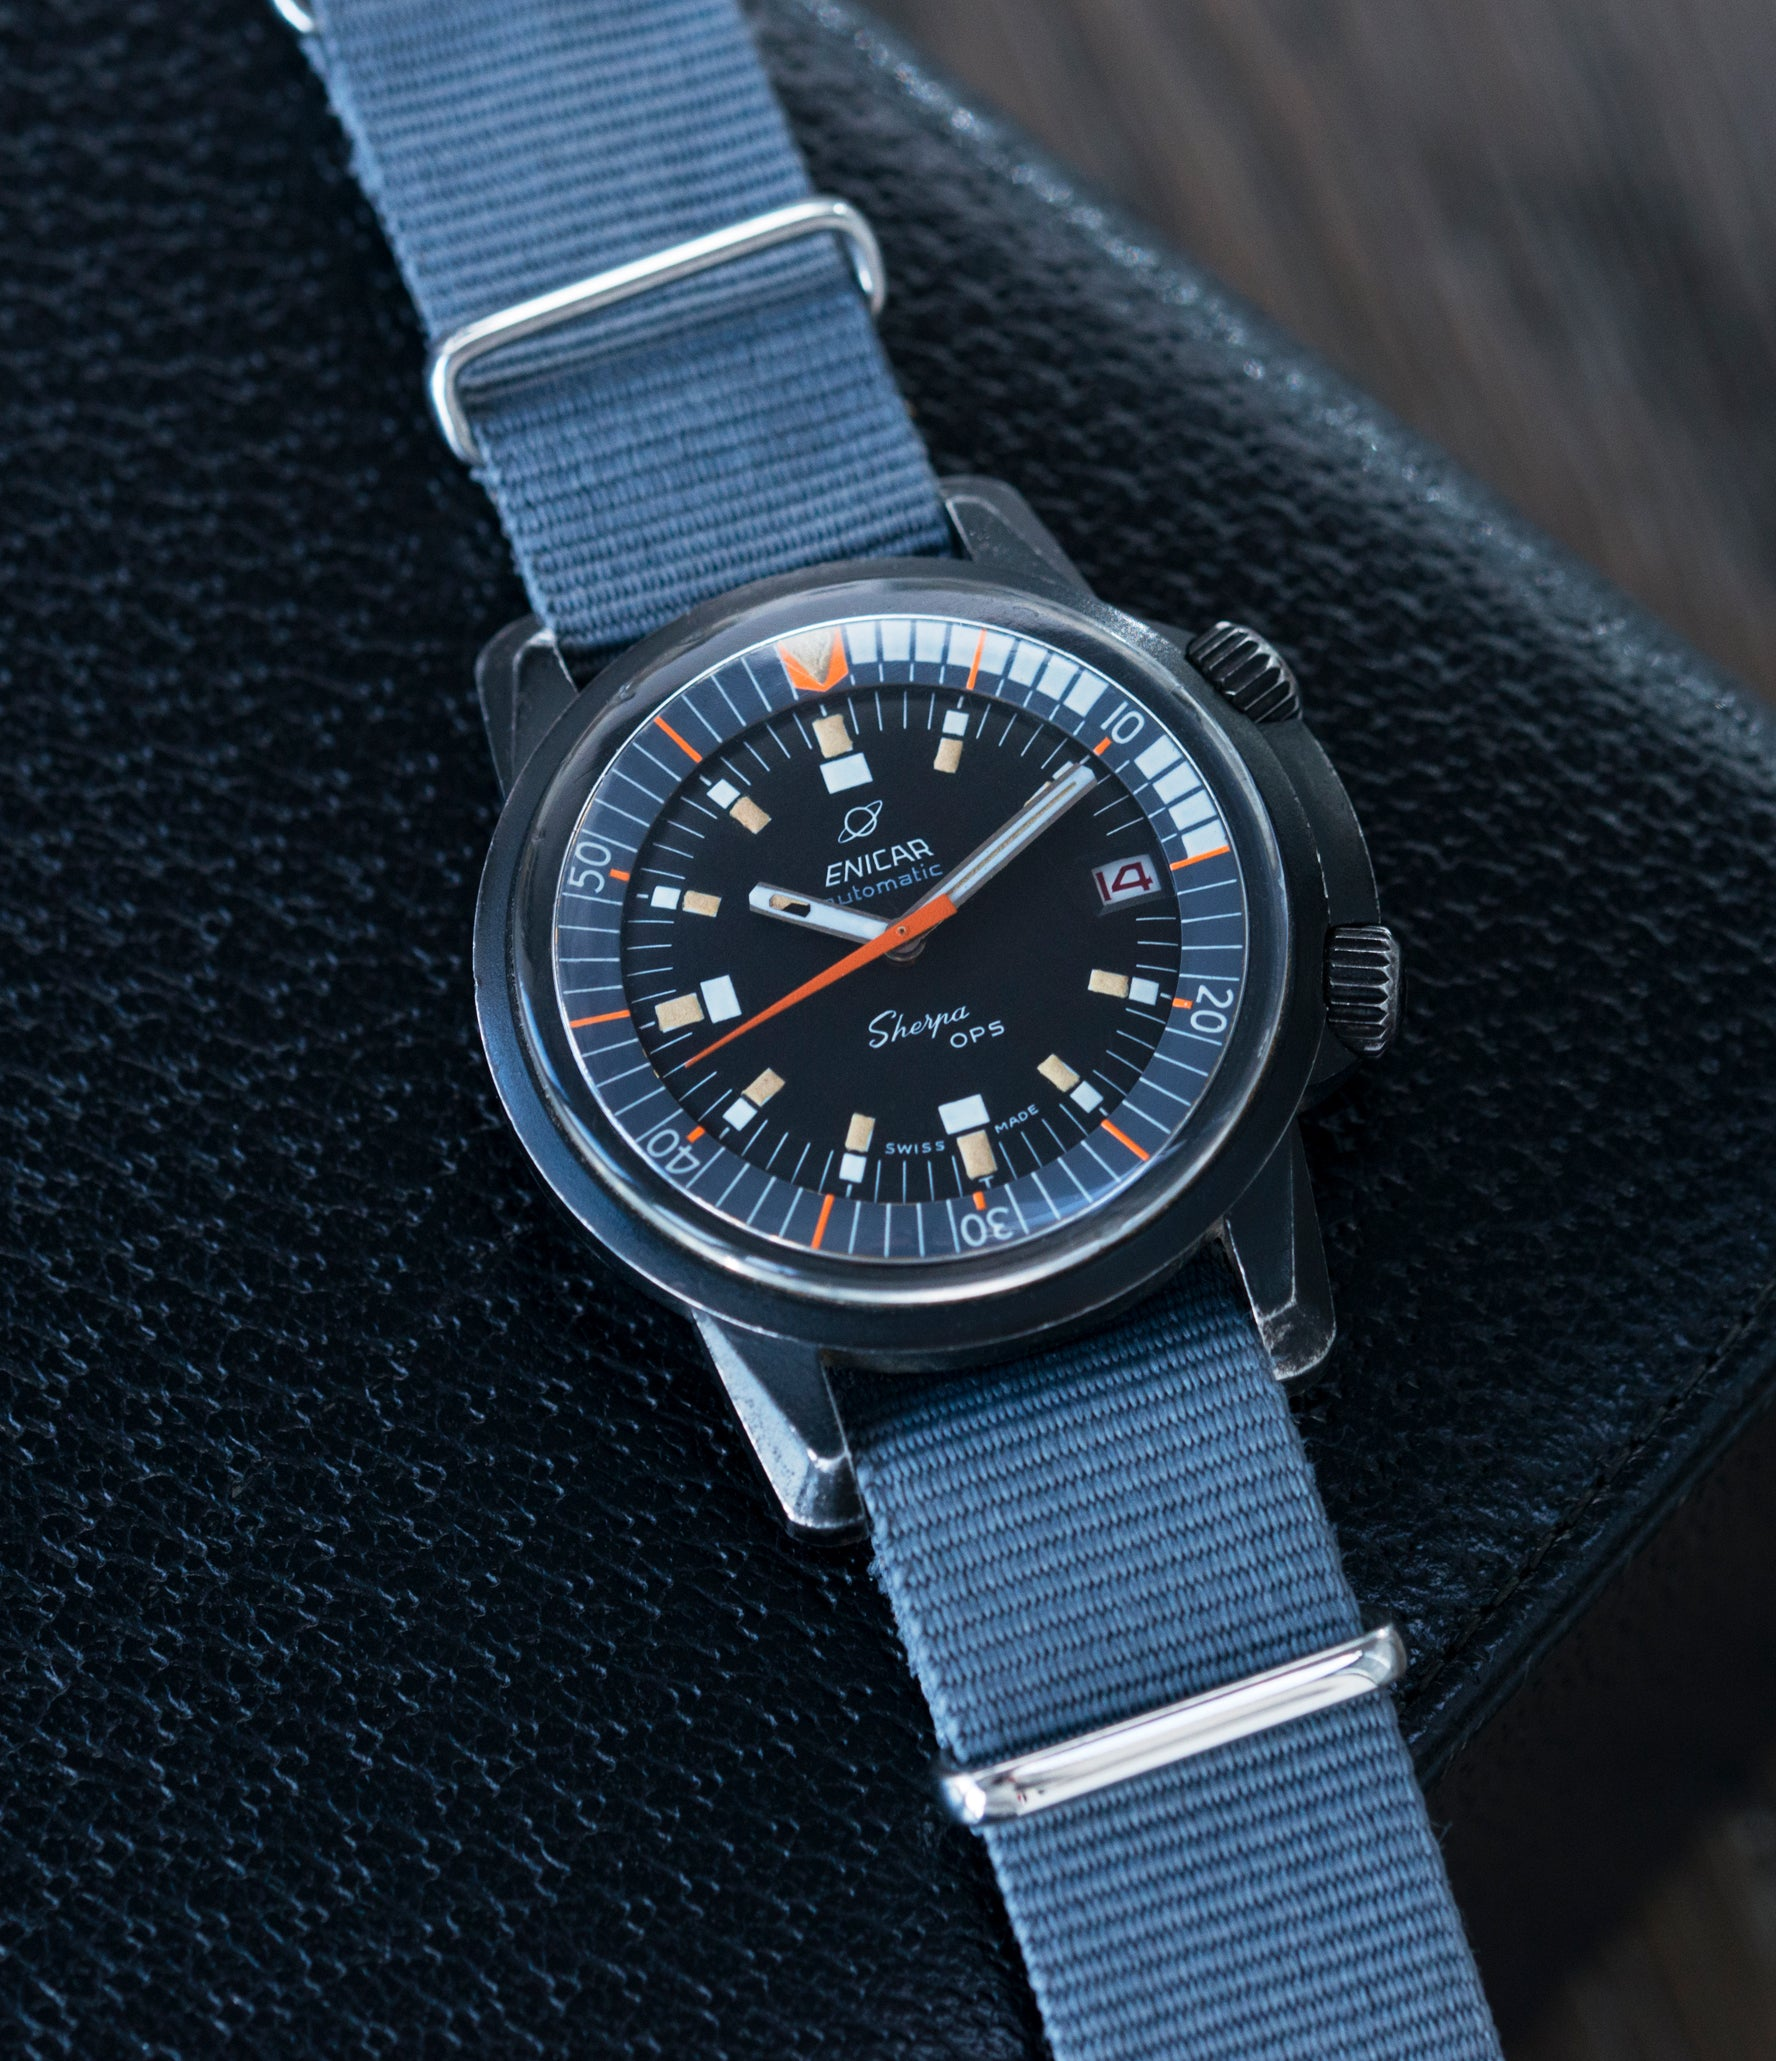 vintage Enicar Sherpa OPS 600 Mark 2 Ref. 144/35/03A diver watch for sale online at A Collected Man London UK specialist of rare vintage watches